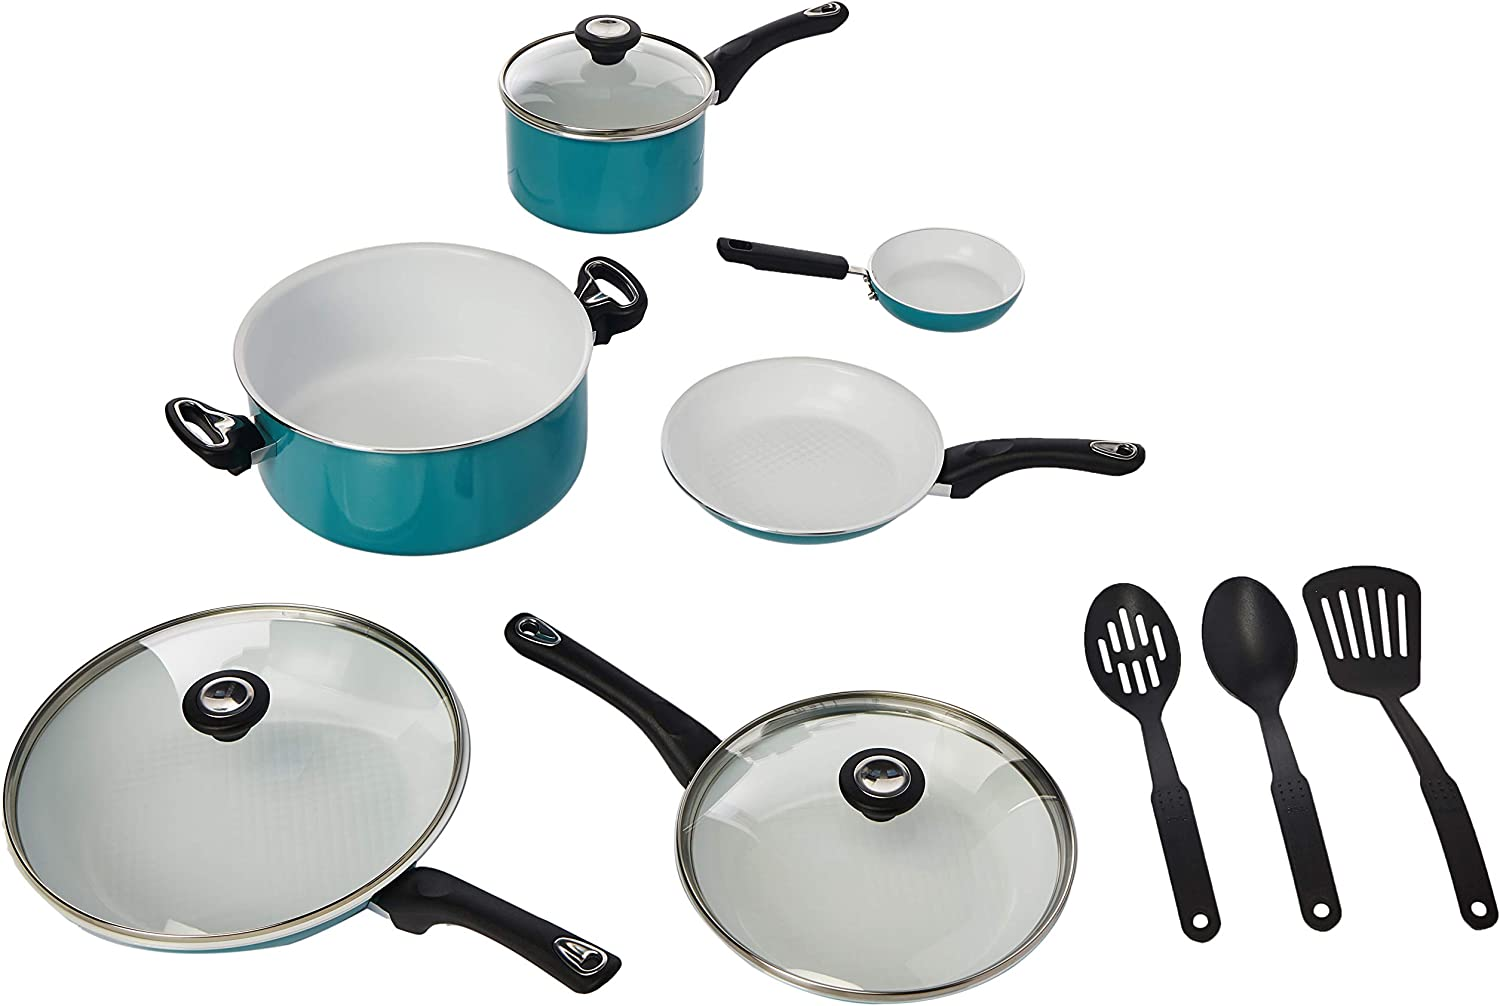 GreenPan Ceramic Cookware